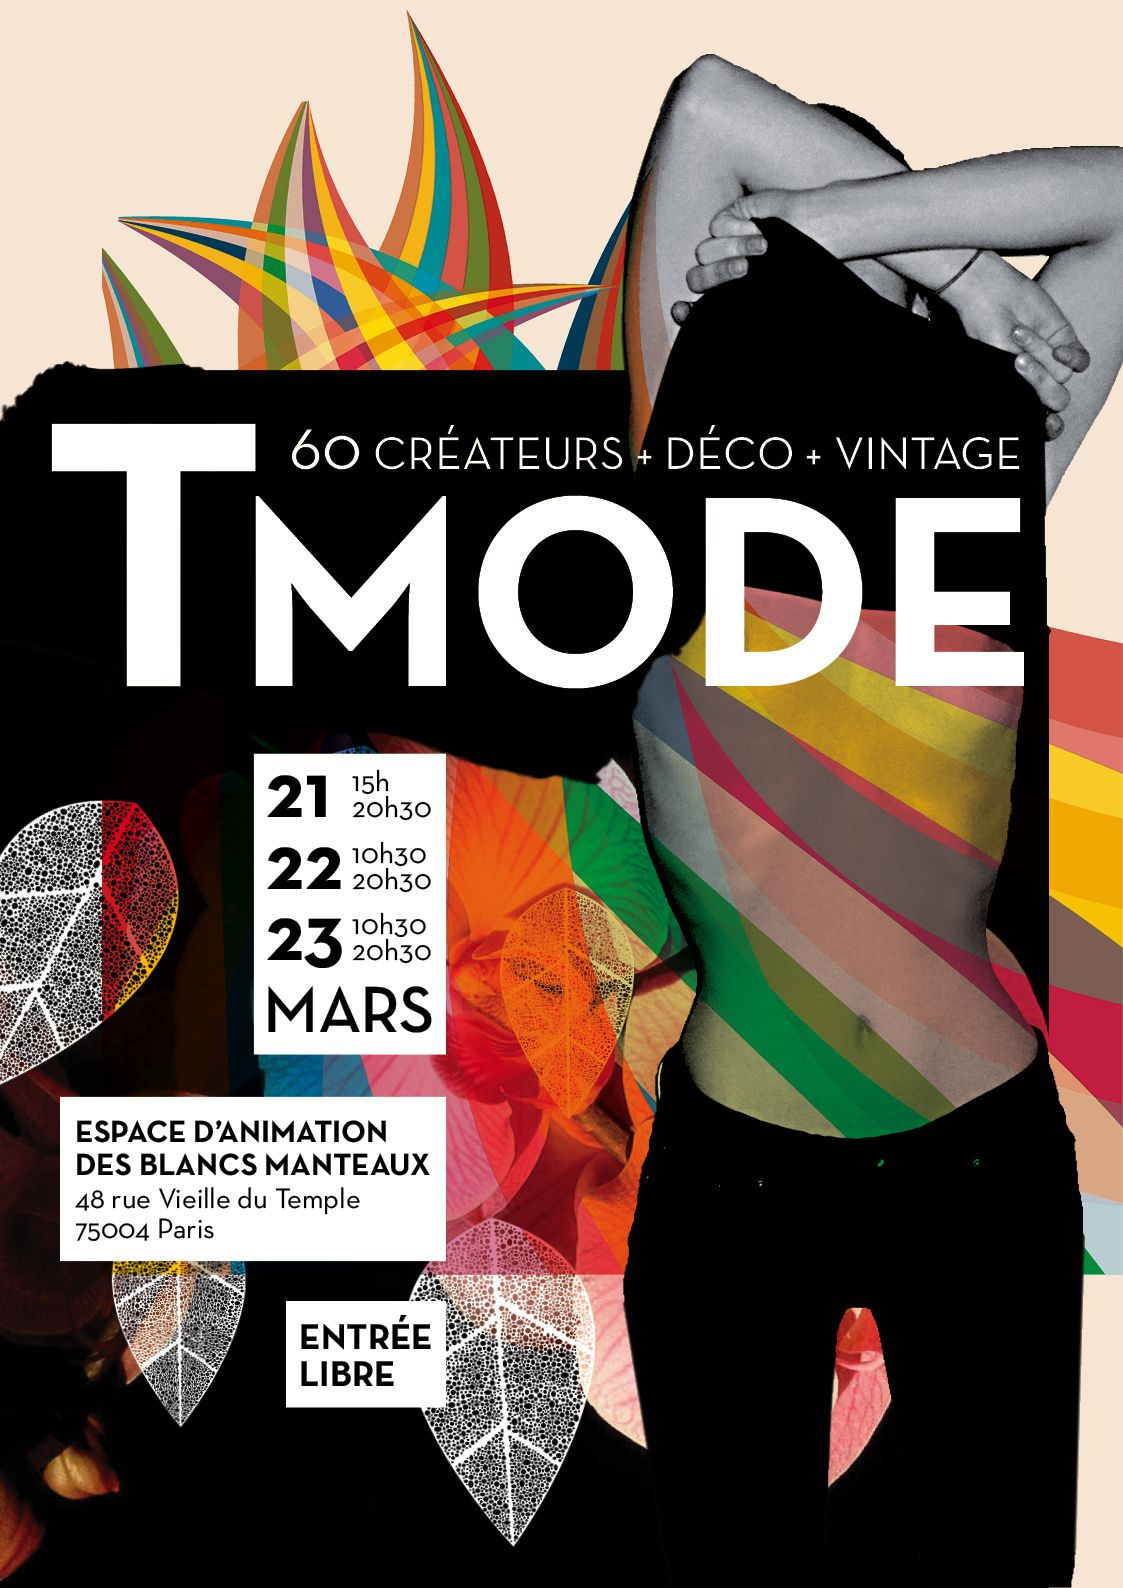 Salon t mode ce weekend espace des blancs manteaux a for Salon a paris ce weekend